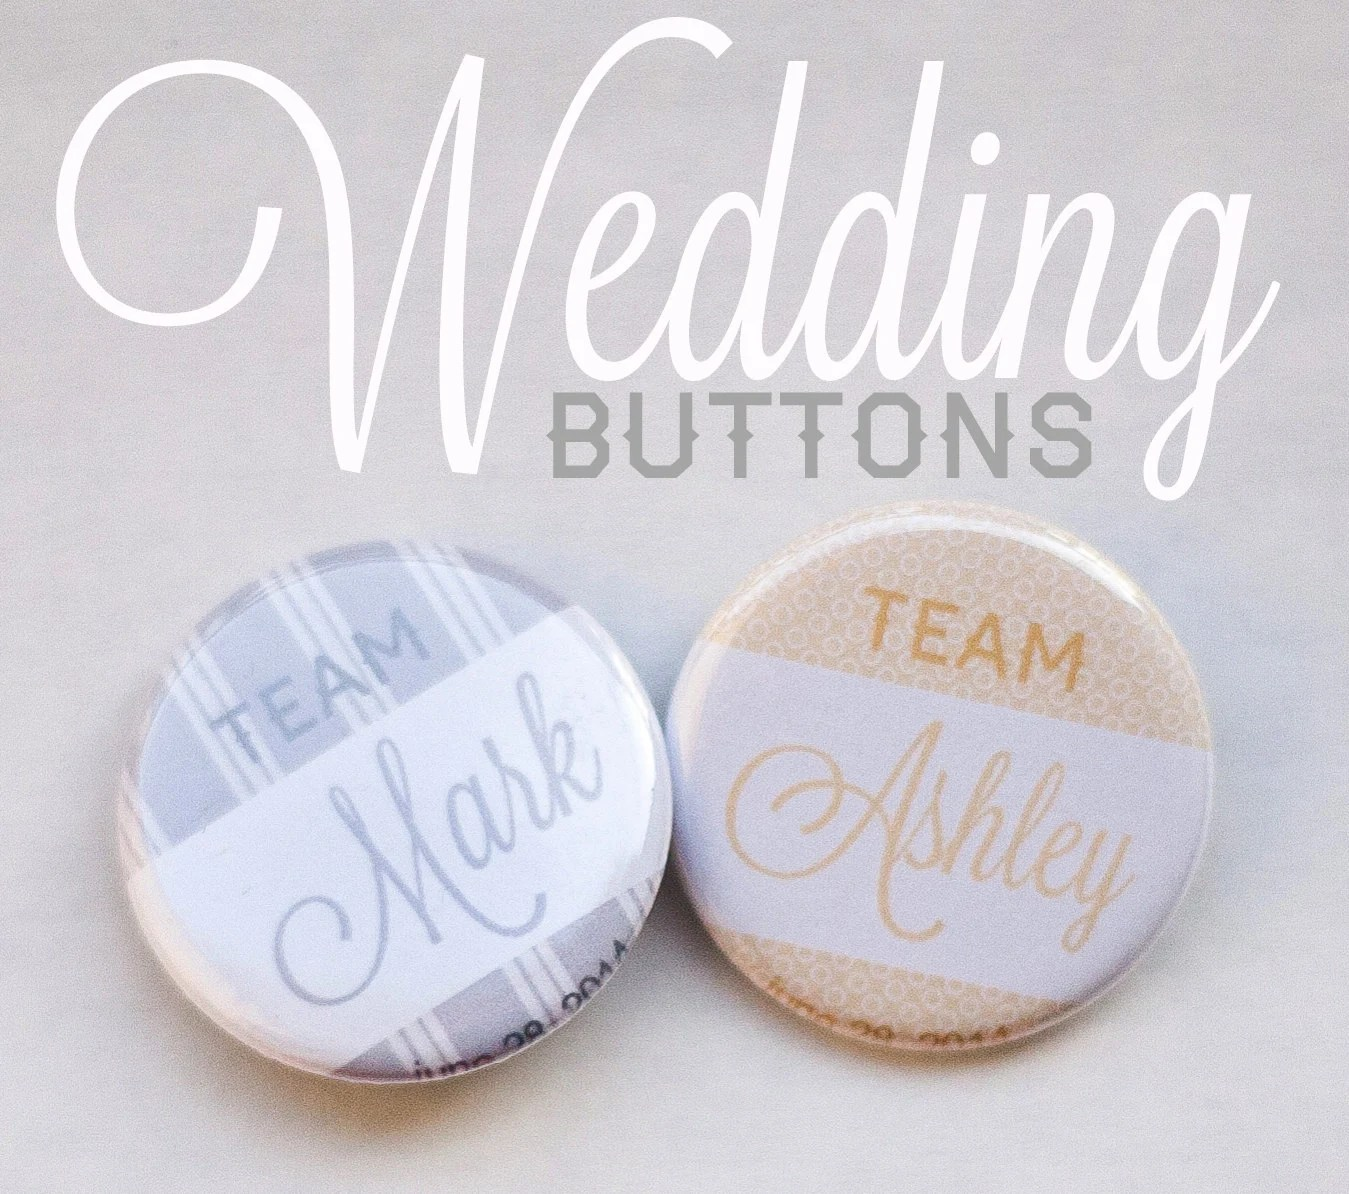 50 custom wedding buttons team bride team groom - exit343design